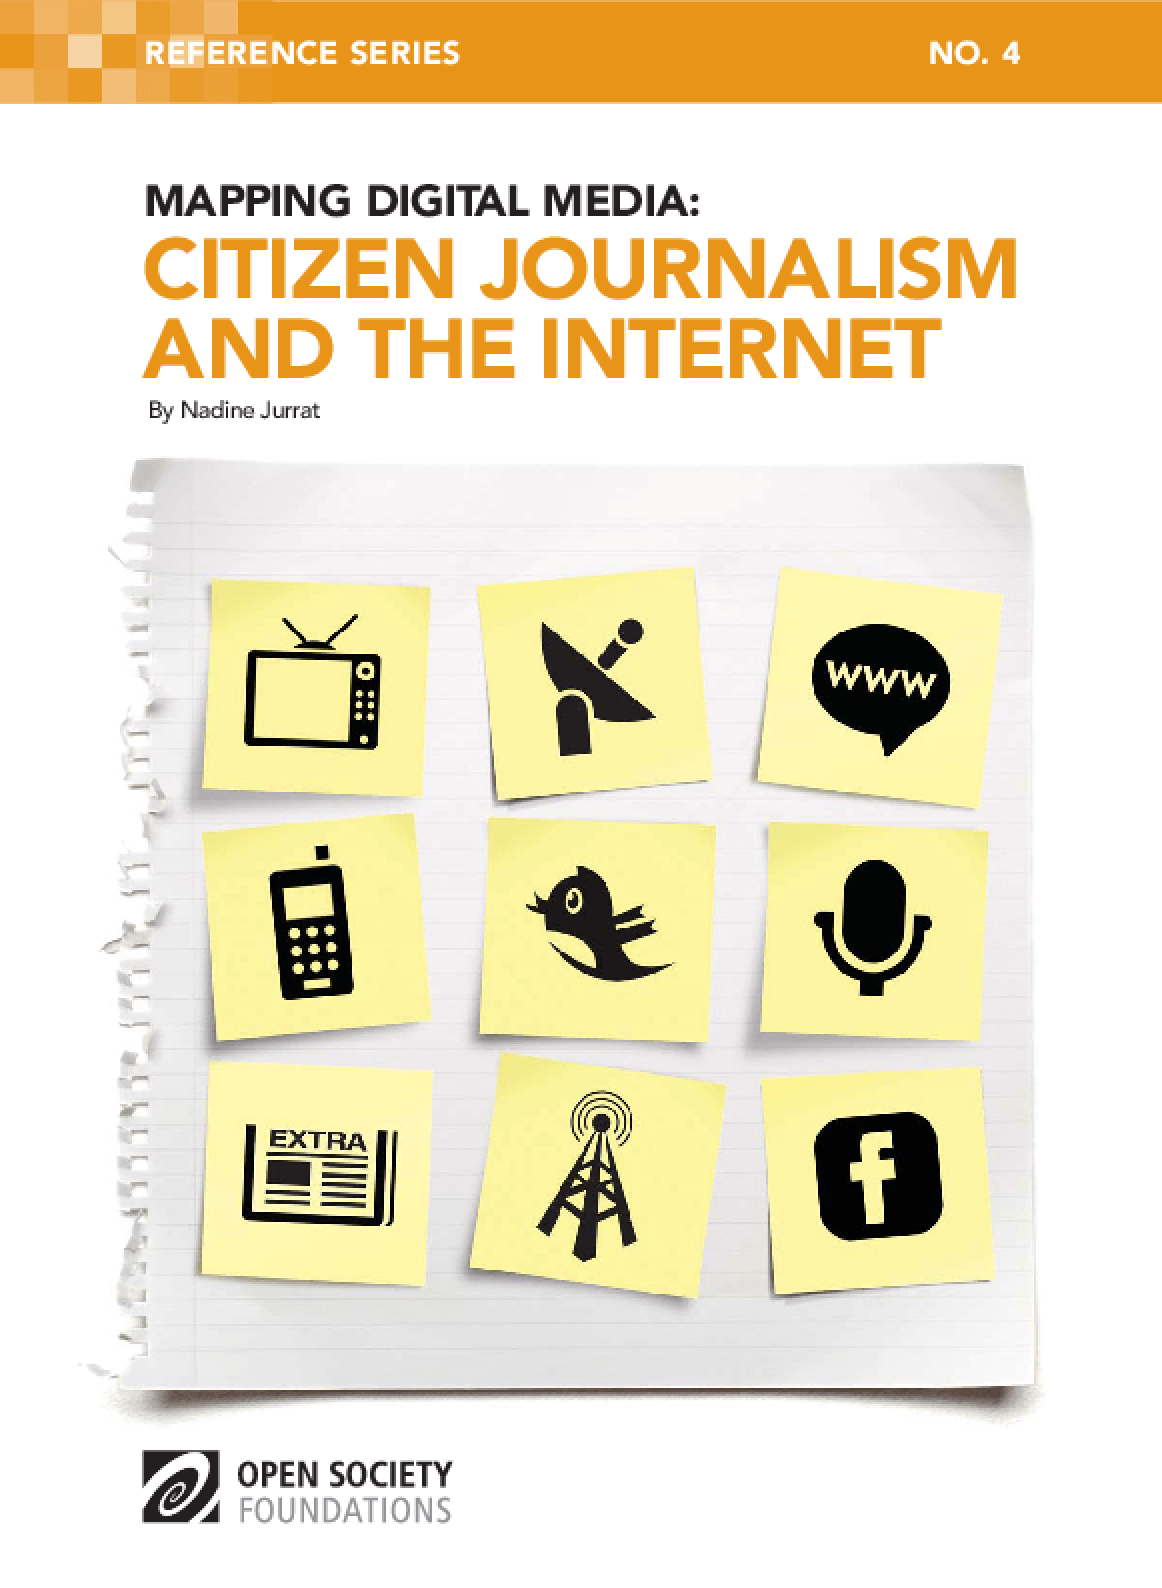 Mapping Digital Media: Citizen Journalism and the Internet